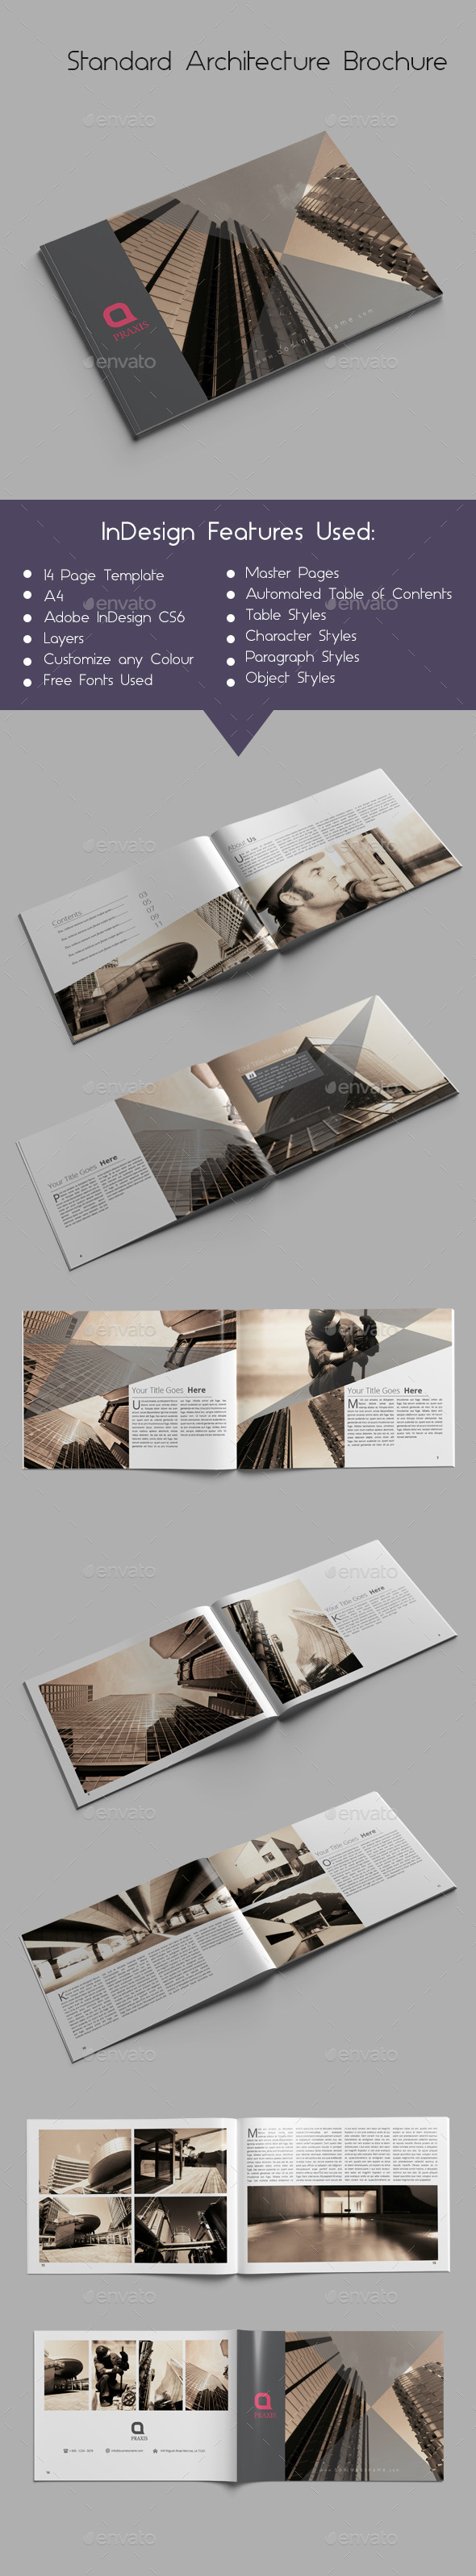 Standard Architecture Brochure - Brochures Print Templates